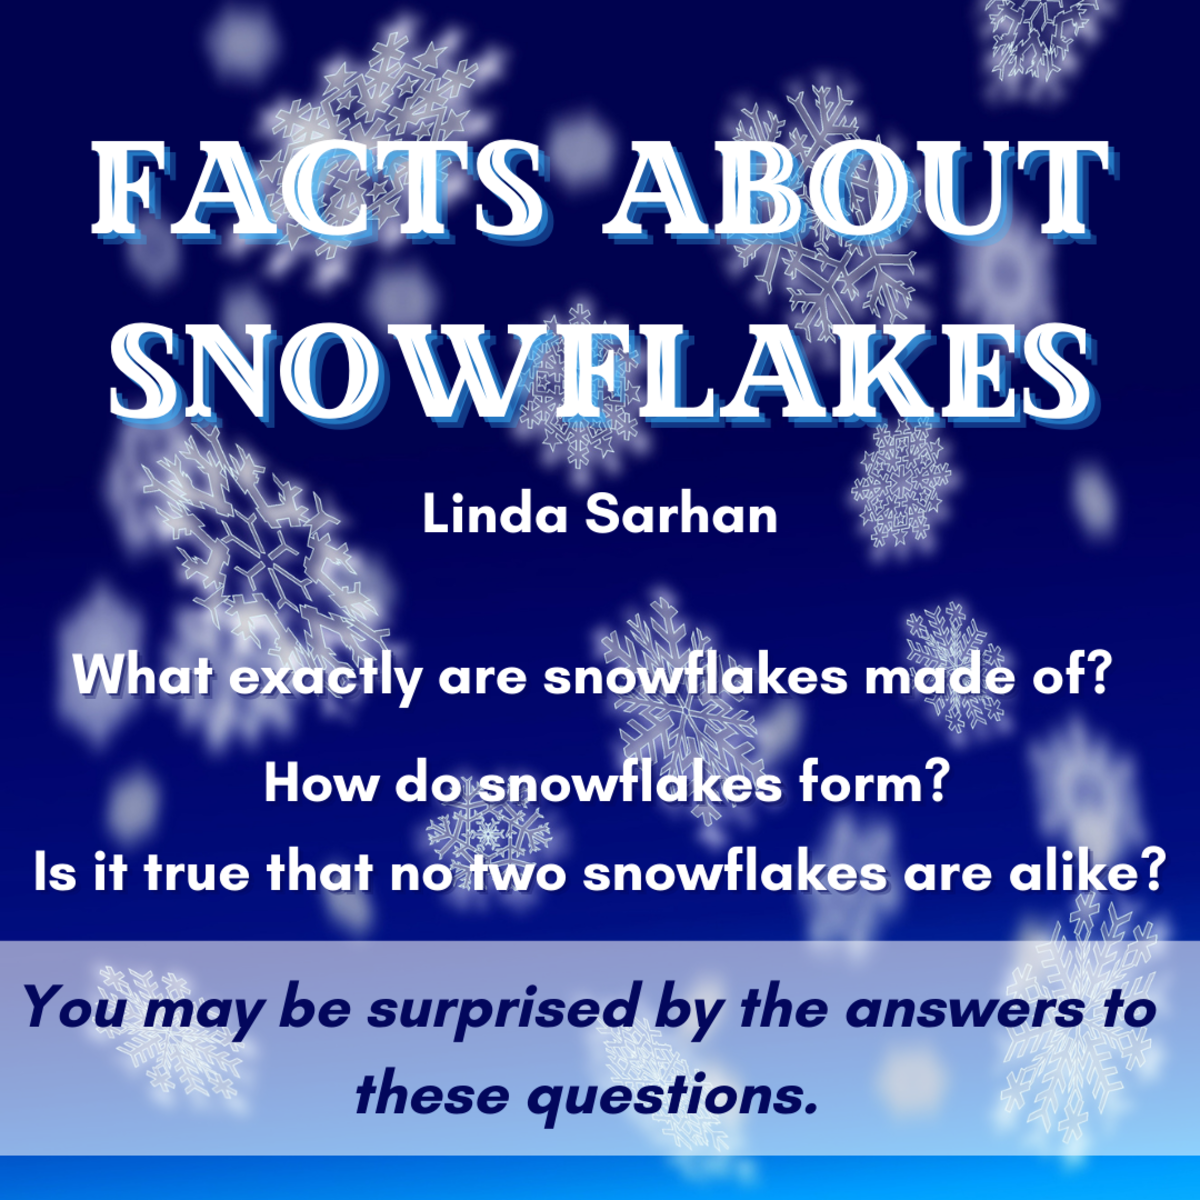 Facts About Snowflakes